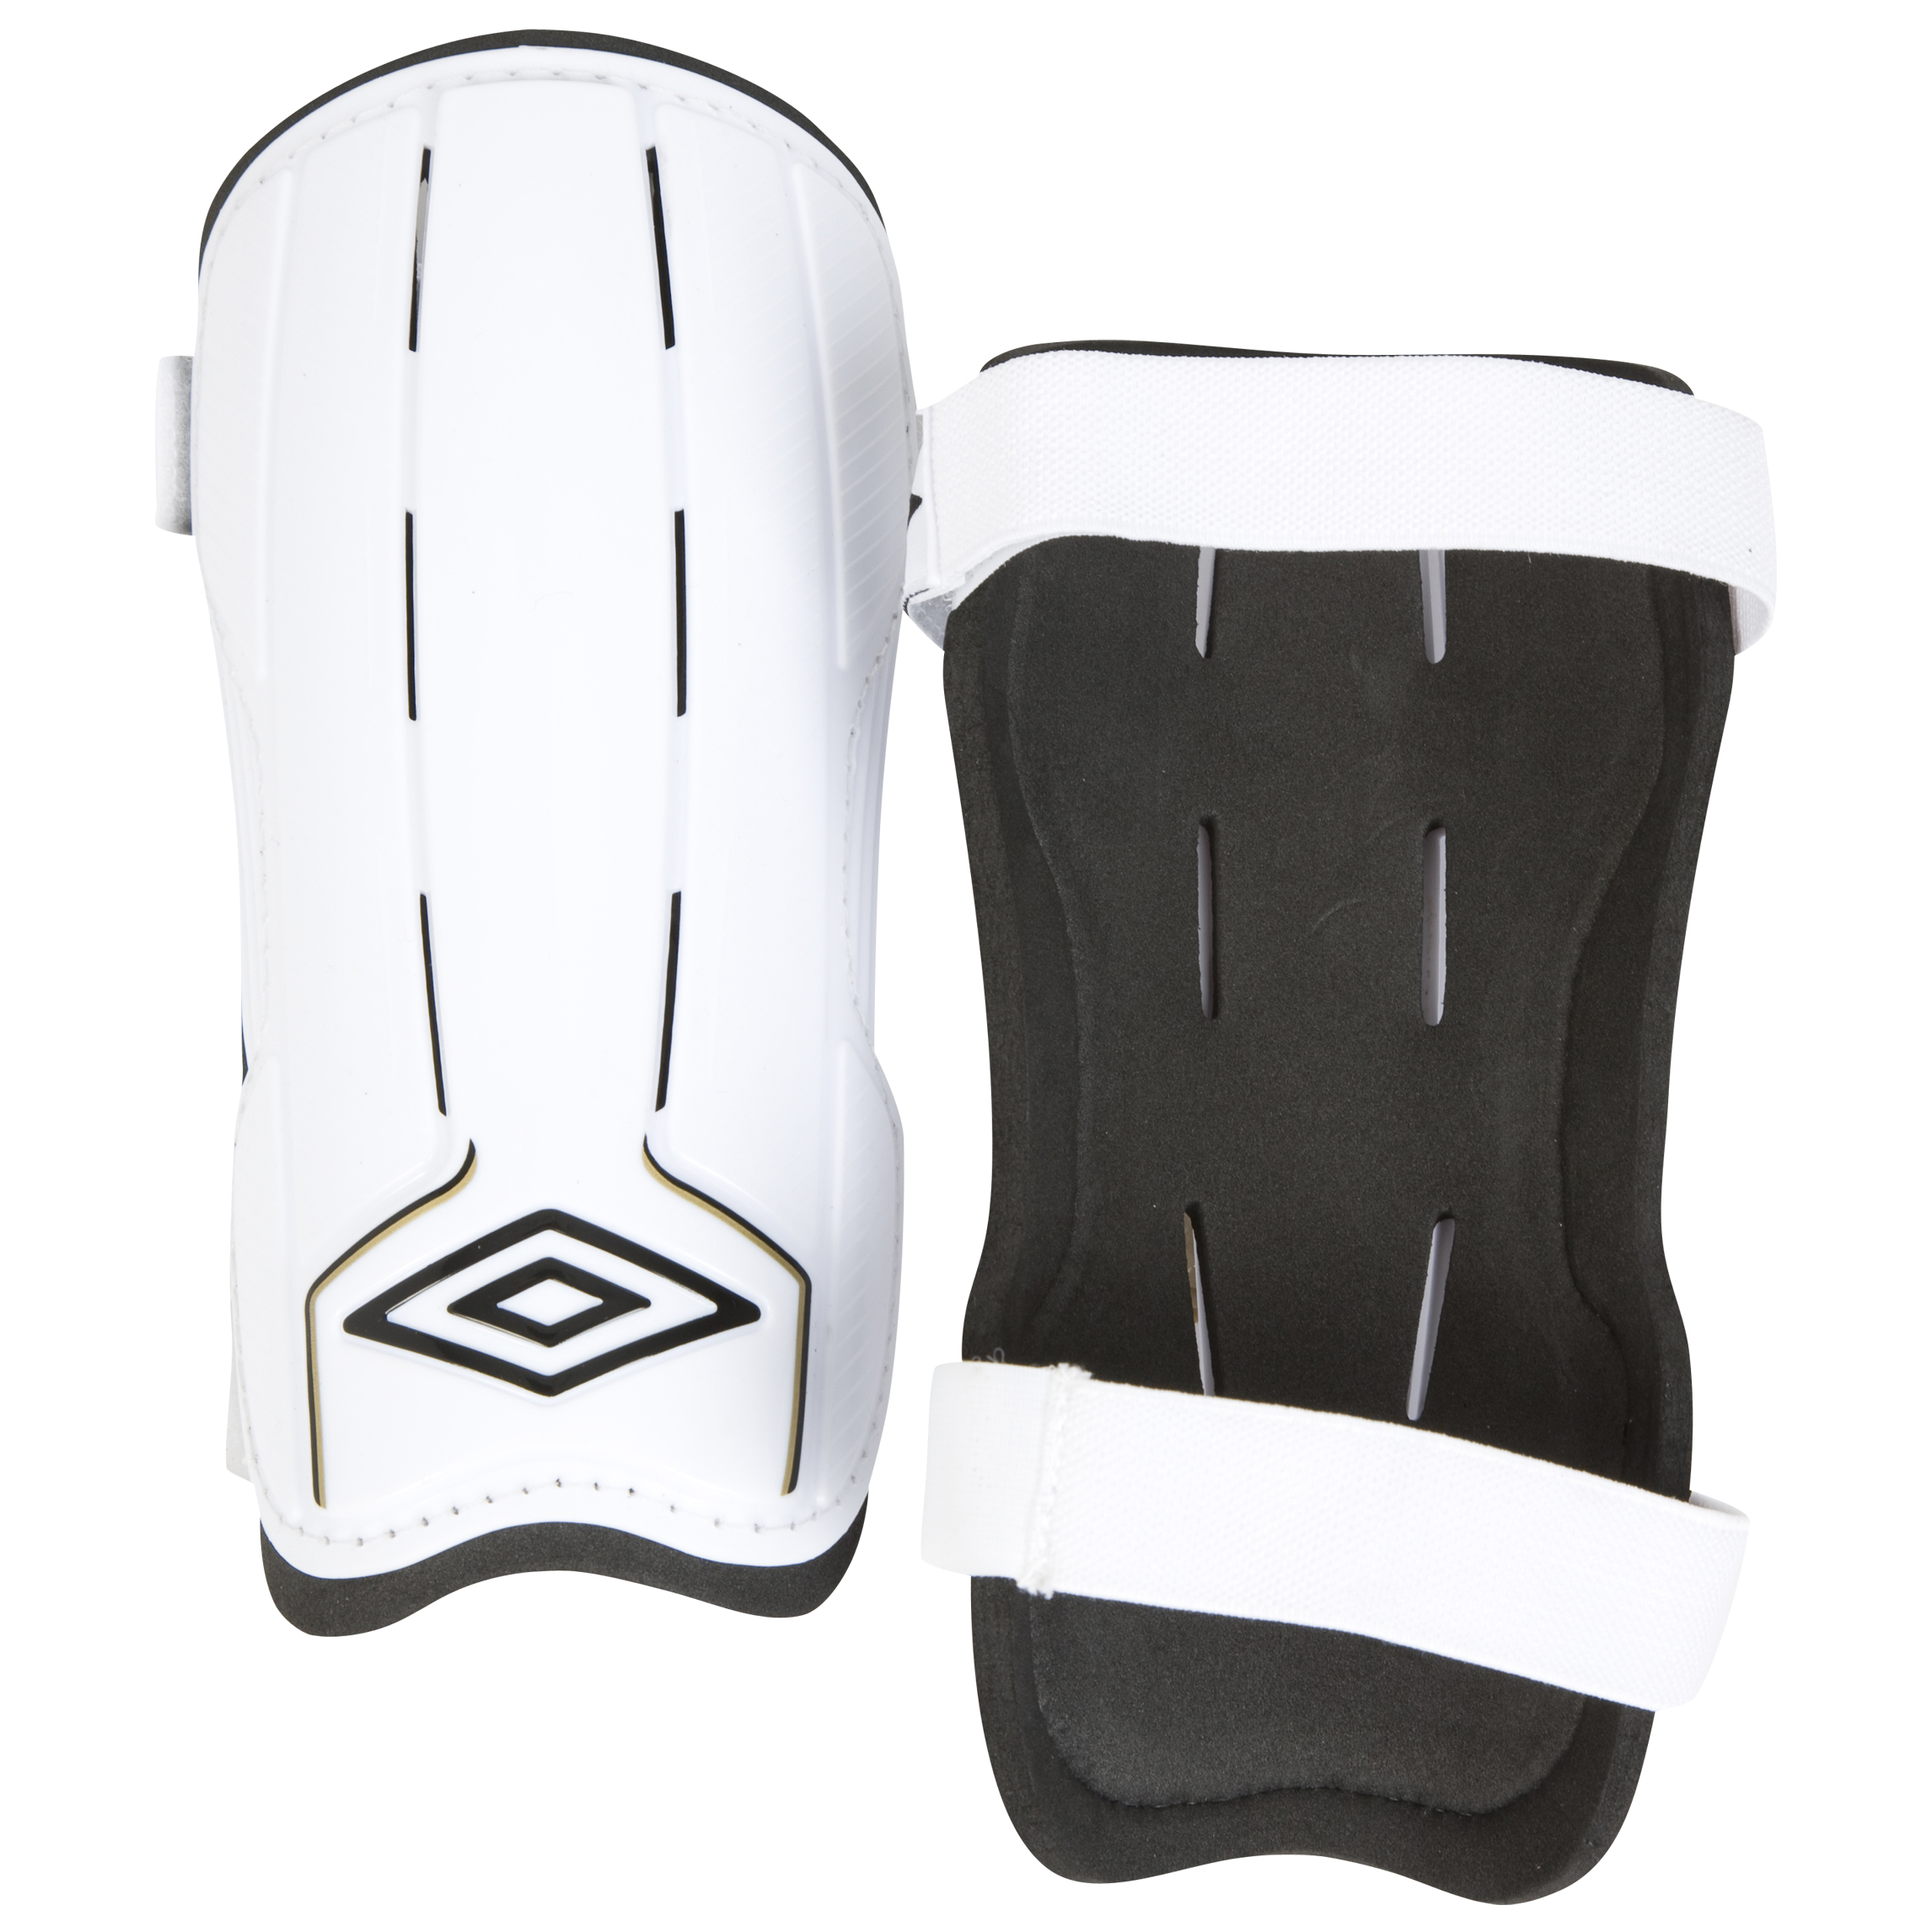 Umbro Shield Shin Guard